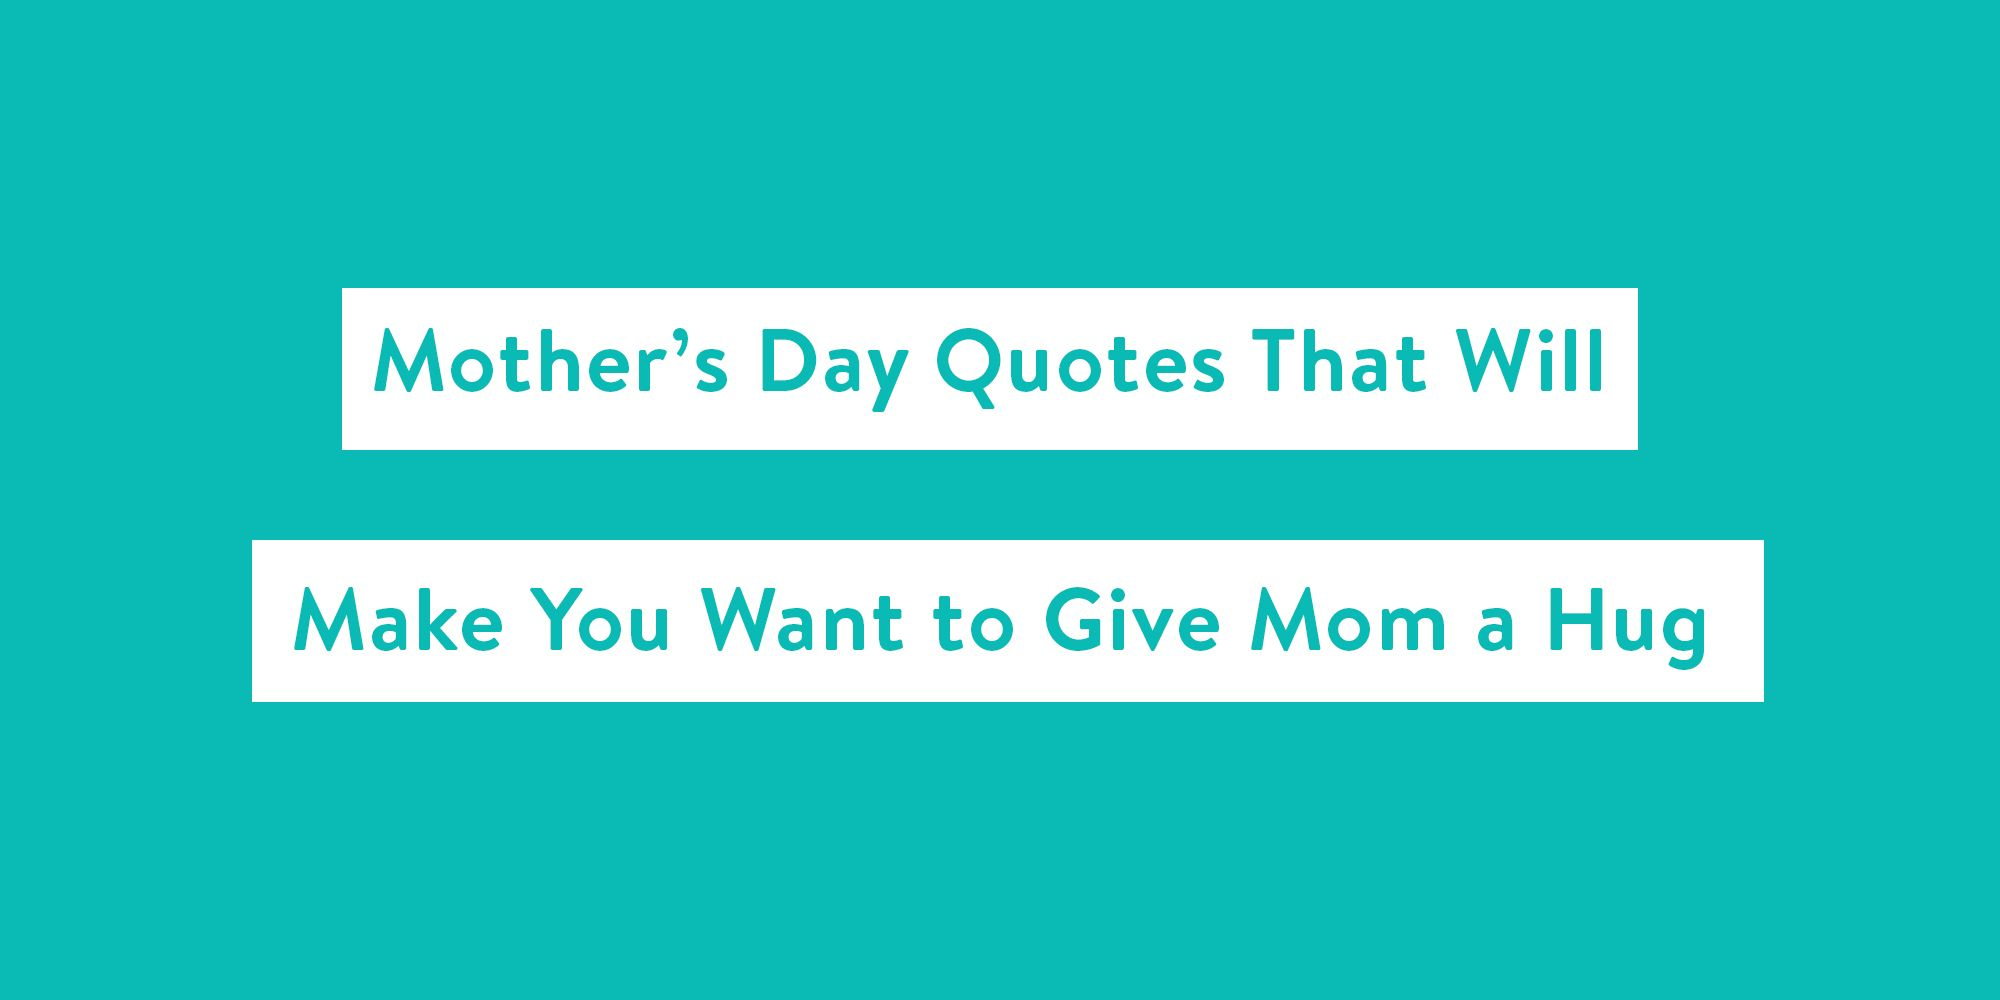 How To Make A Quote 10 Best Mother's Day Quotes  Inspiring Quotes About Moms